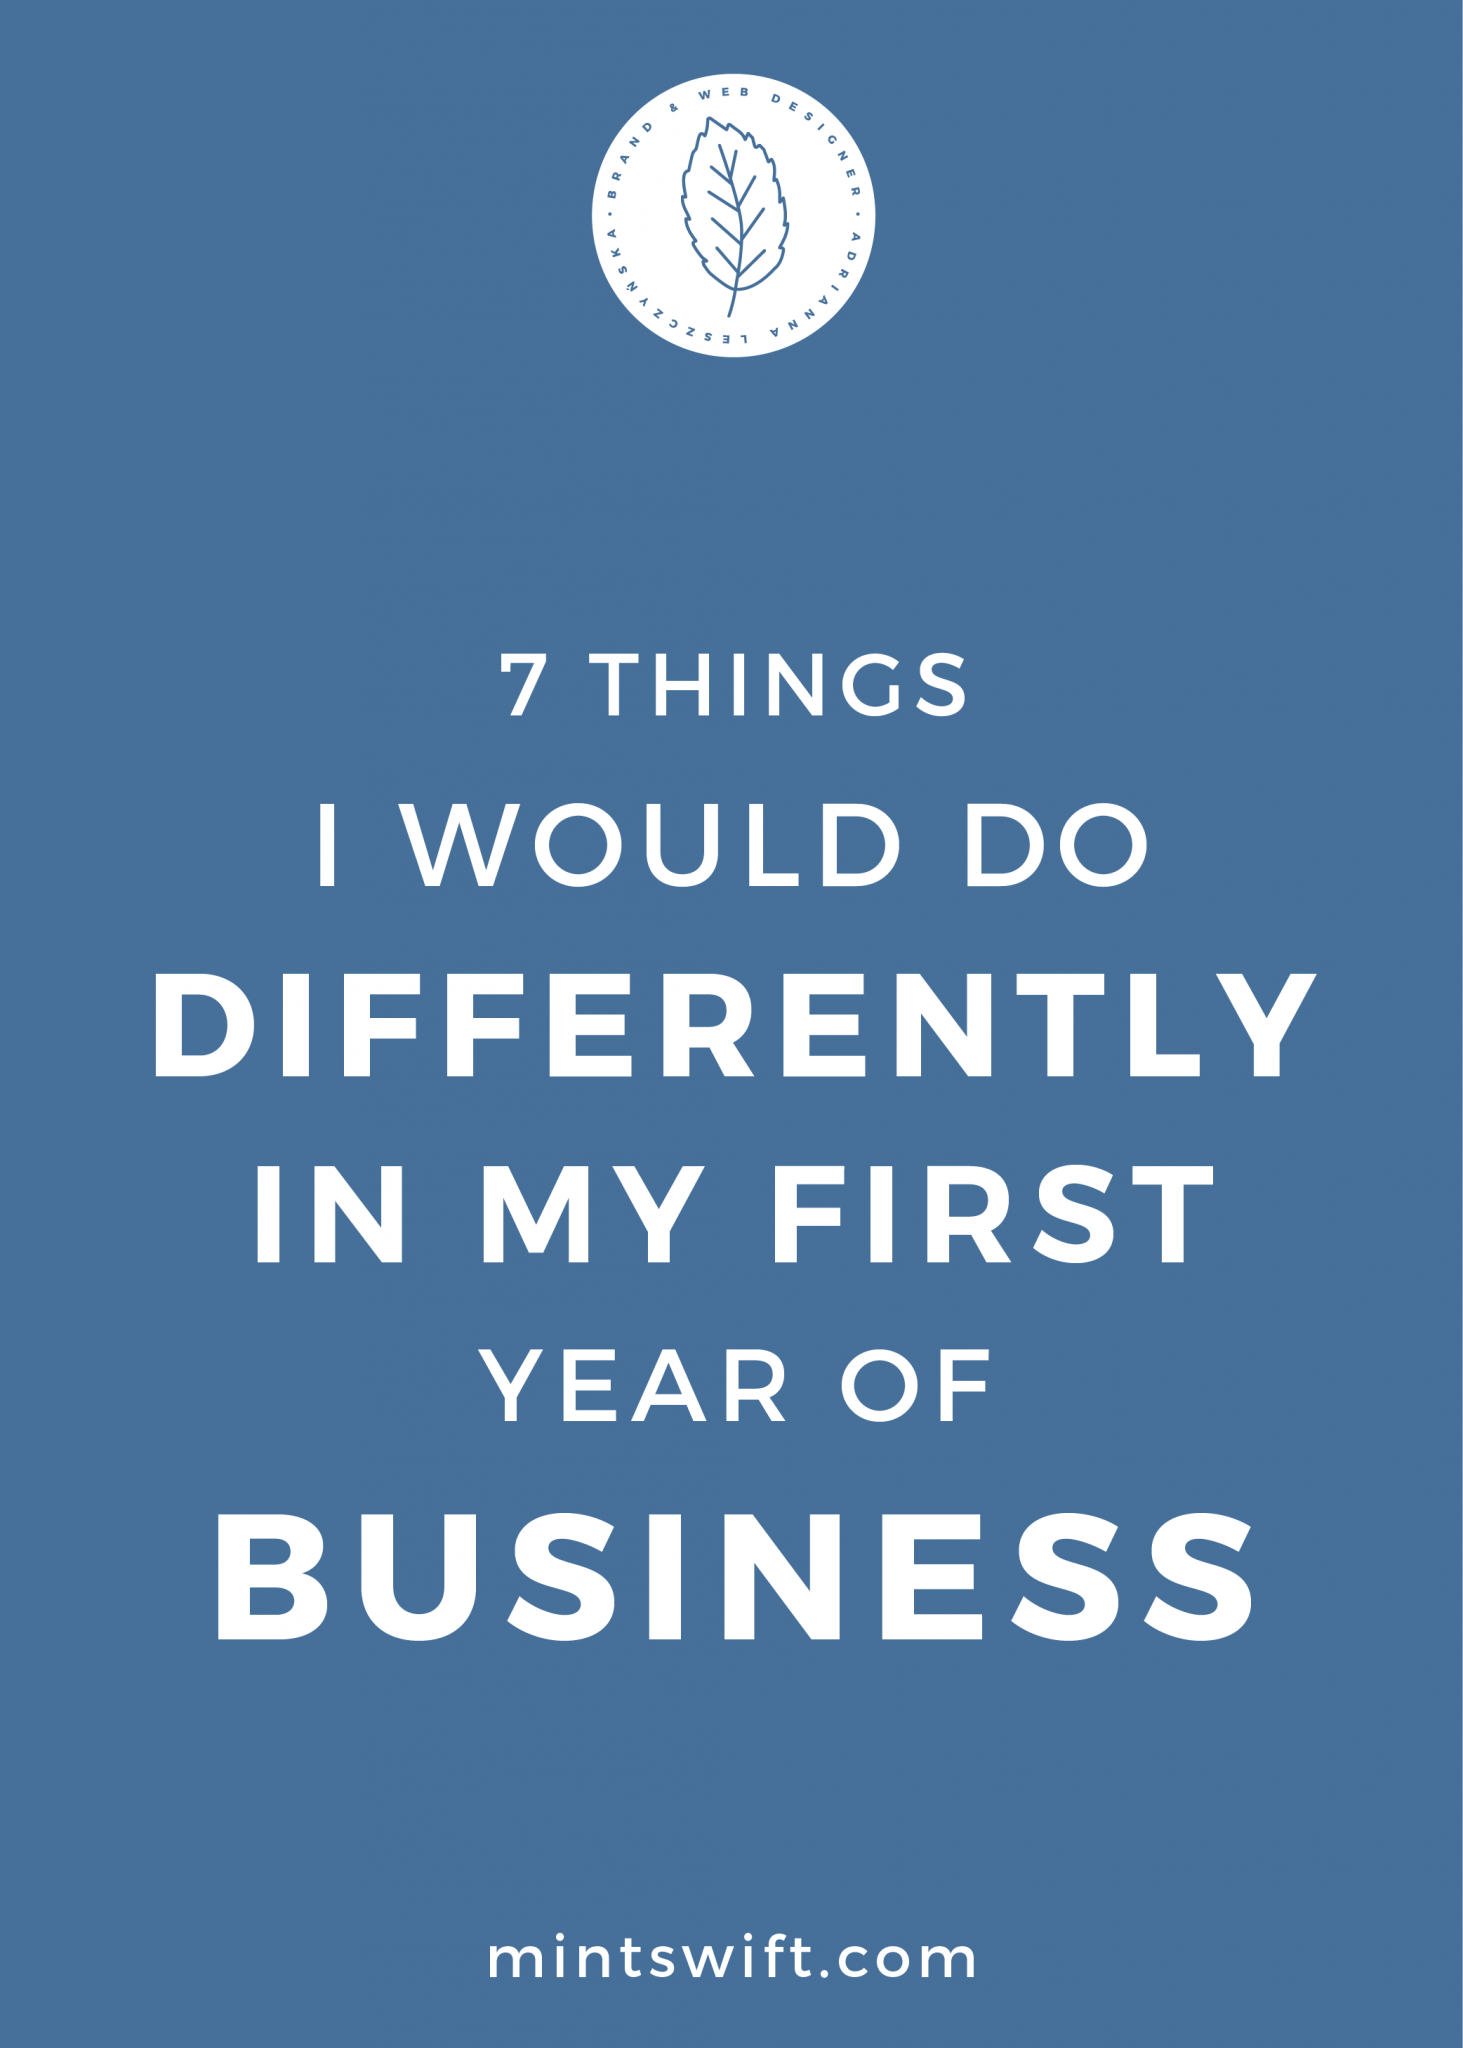 7 Things I Would Do Differently in My First Year of Business - MintSwift